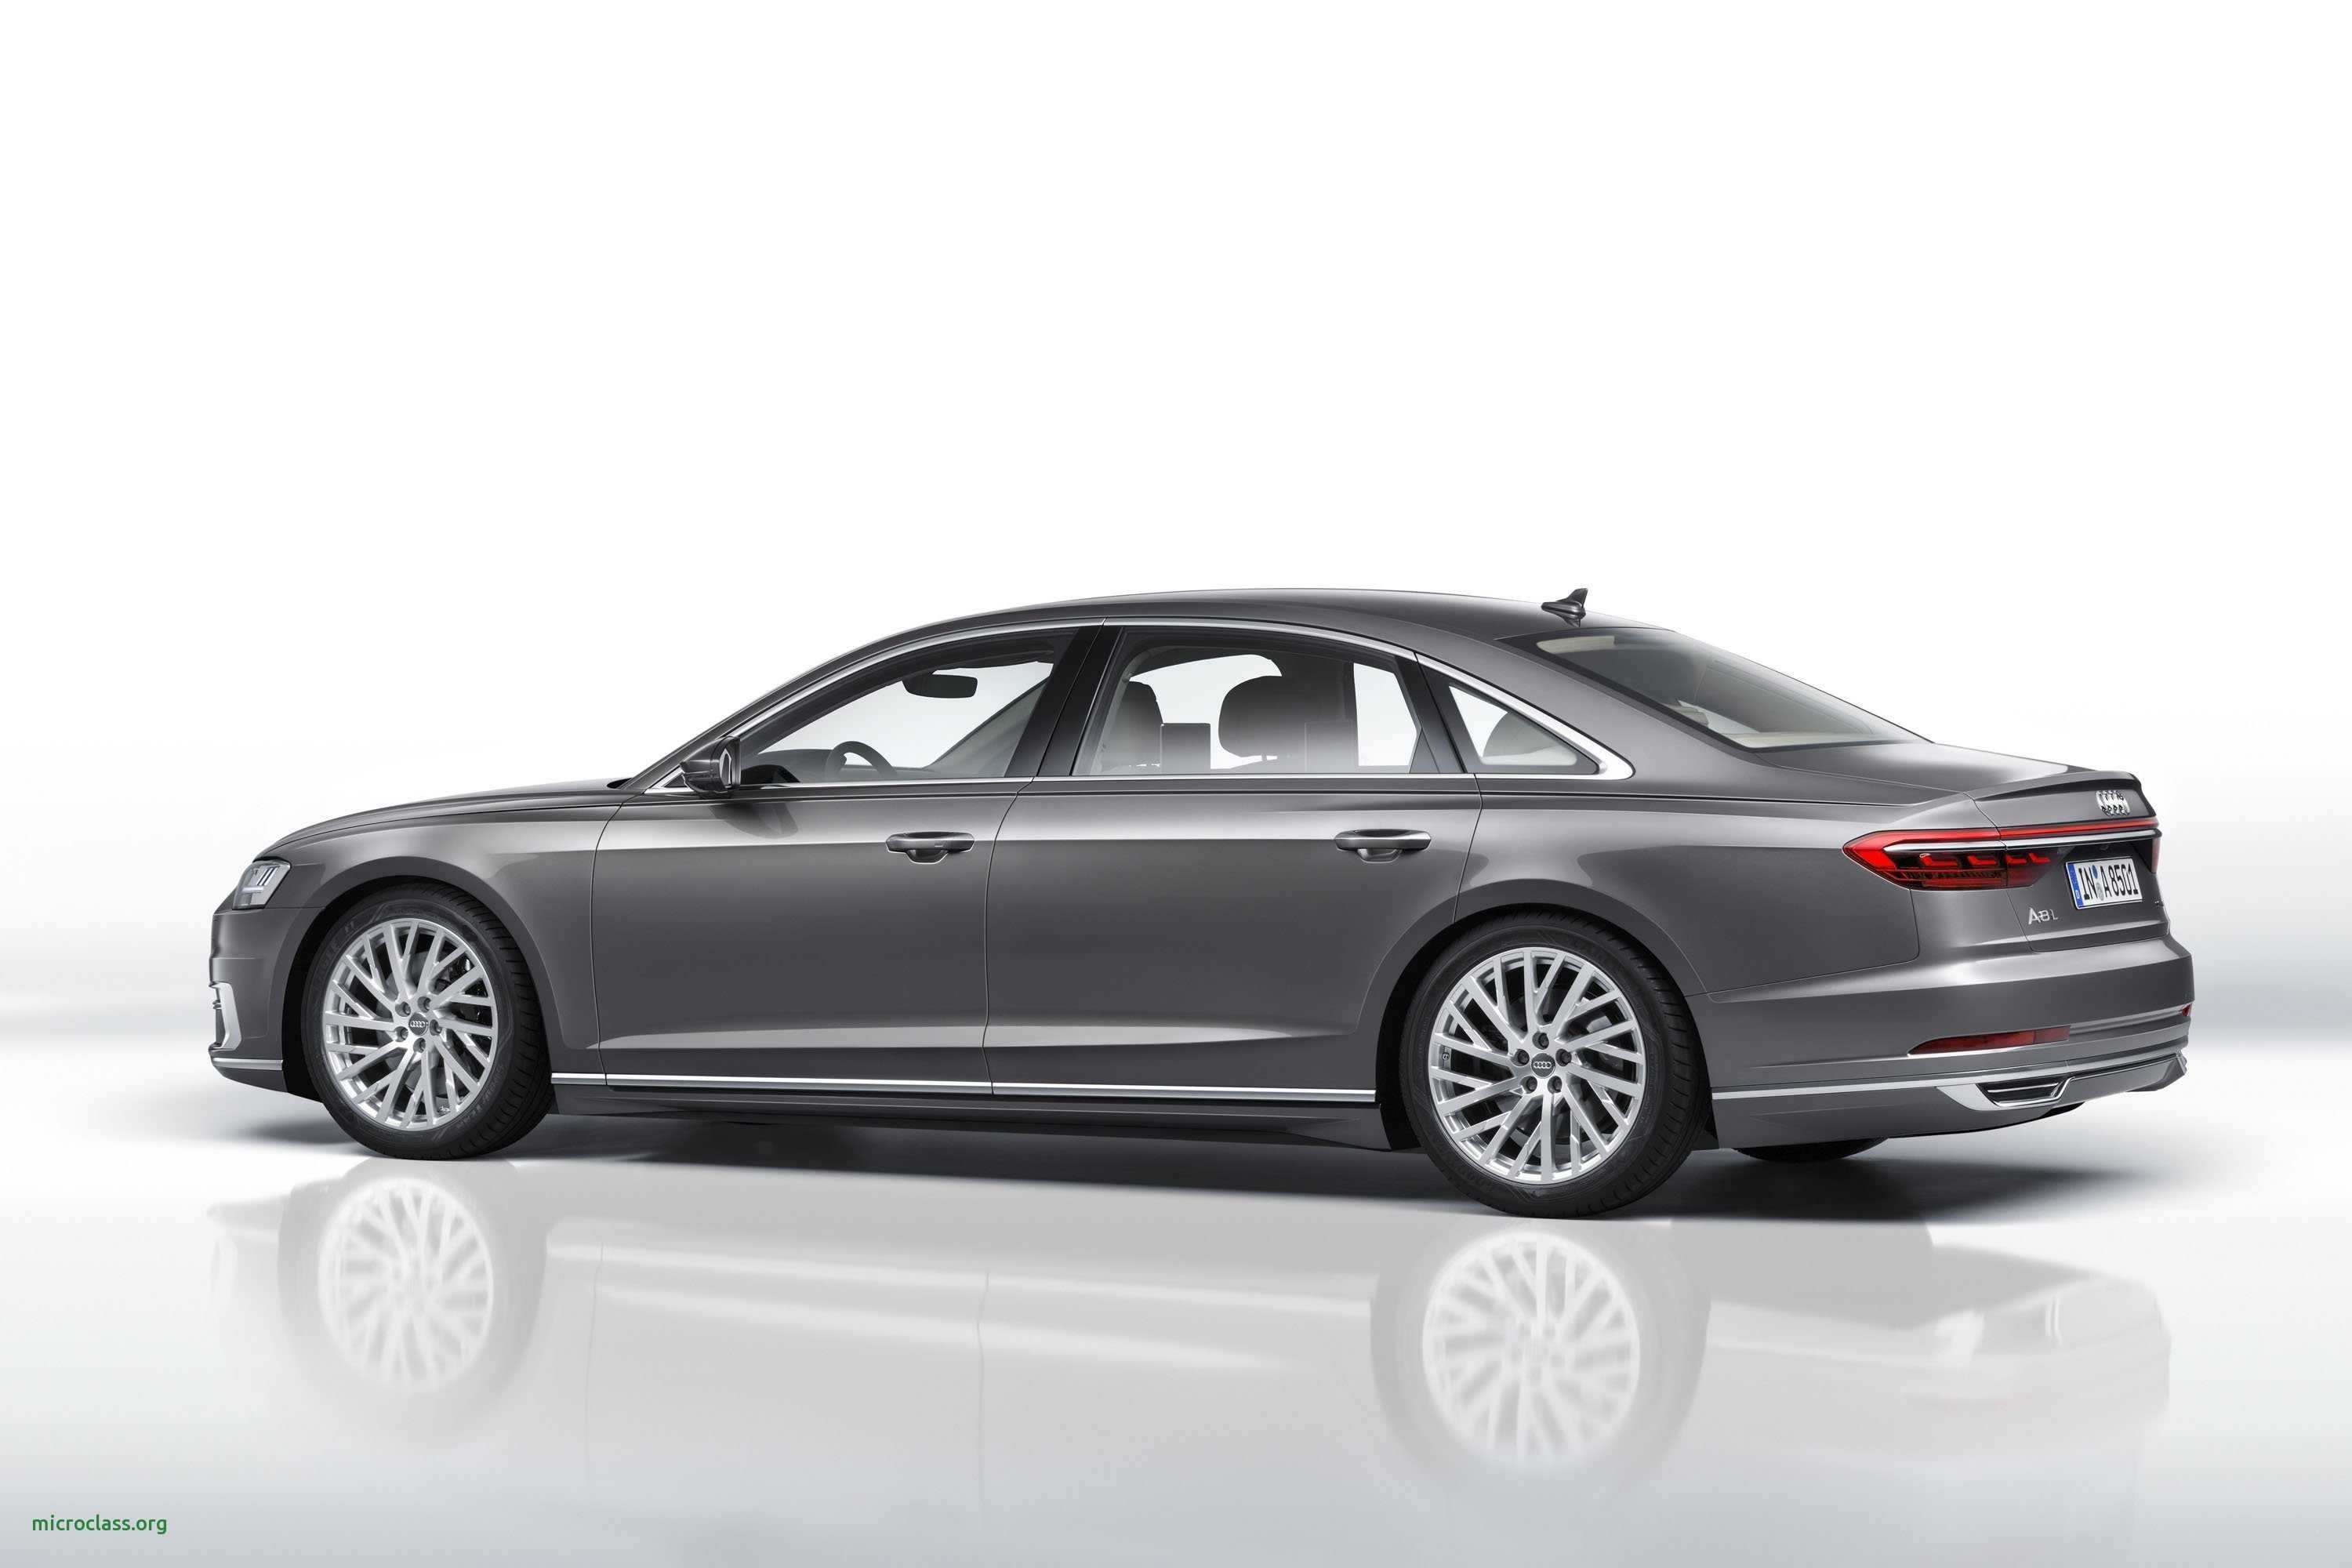 58 The 2019 Audi A8 L In Usa Price Design And Review